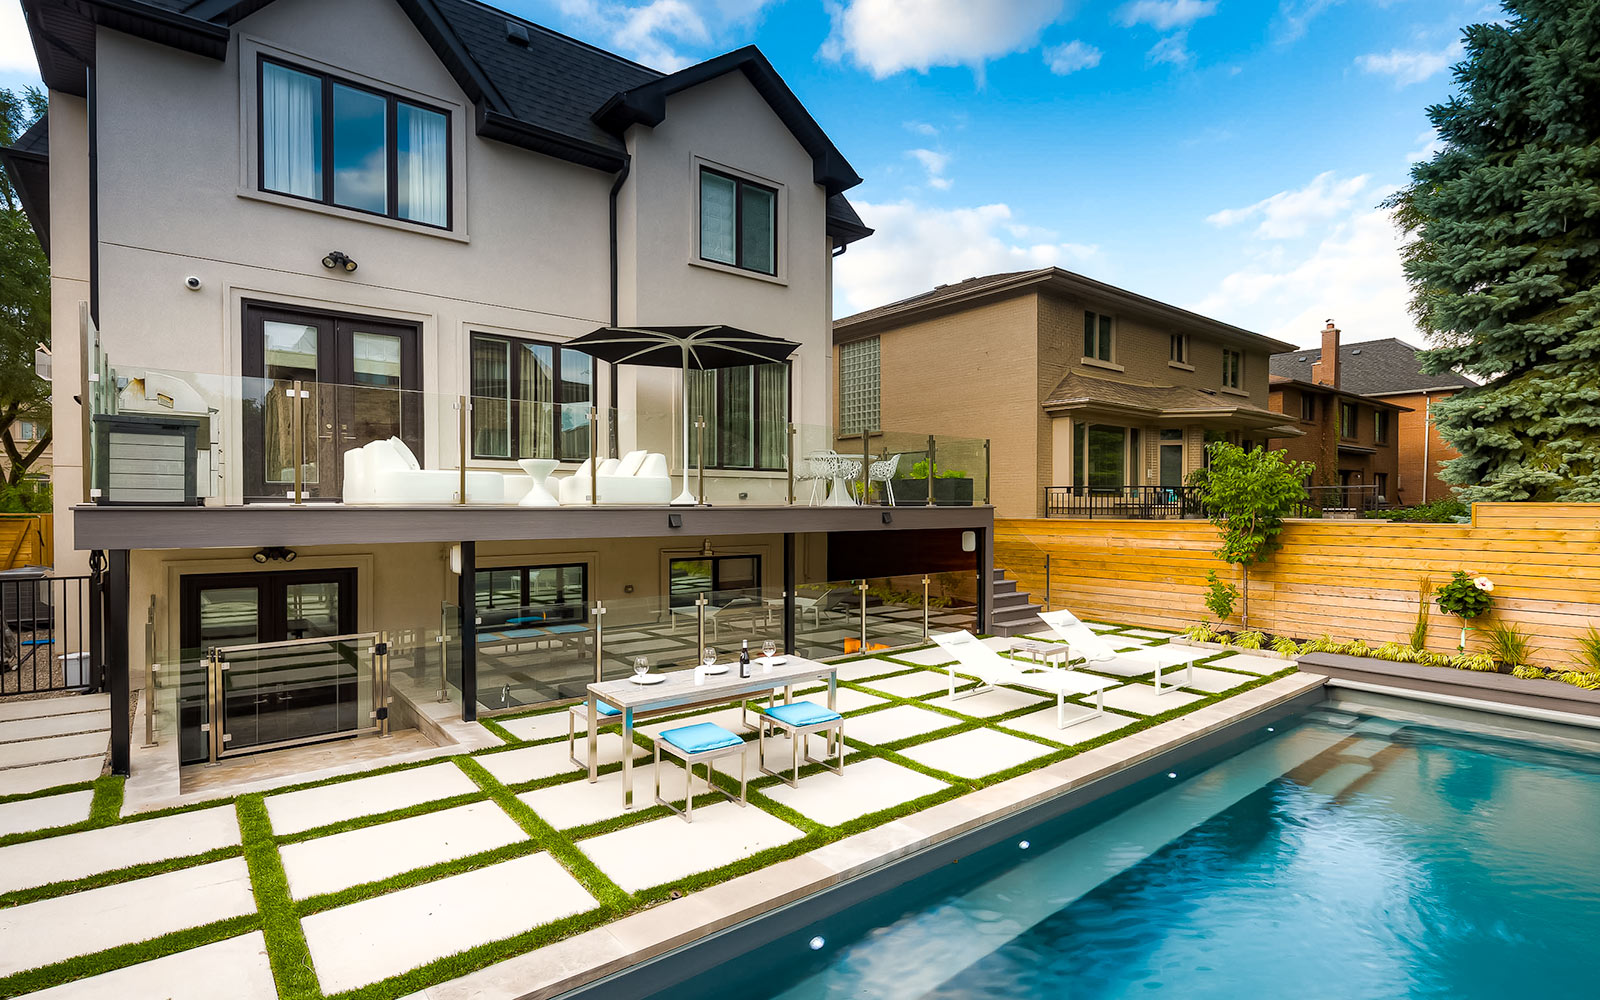 Complete Toronto Landscape Design Project in Nortown Toronto; Featuring Fiberglass Pool Installation, Pool Deck Interlocking & Decking, Outdoor Kitchen, Outdoor Fireplace, TREX Deck Build with Stainless Steel & Glass Railings by Toronto Landscaping Company.